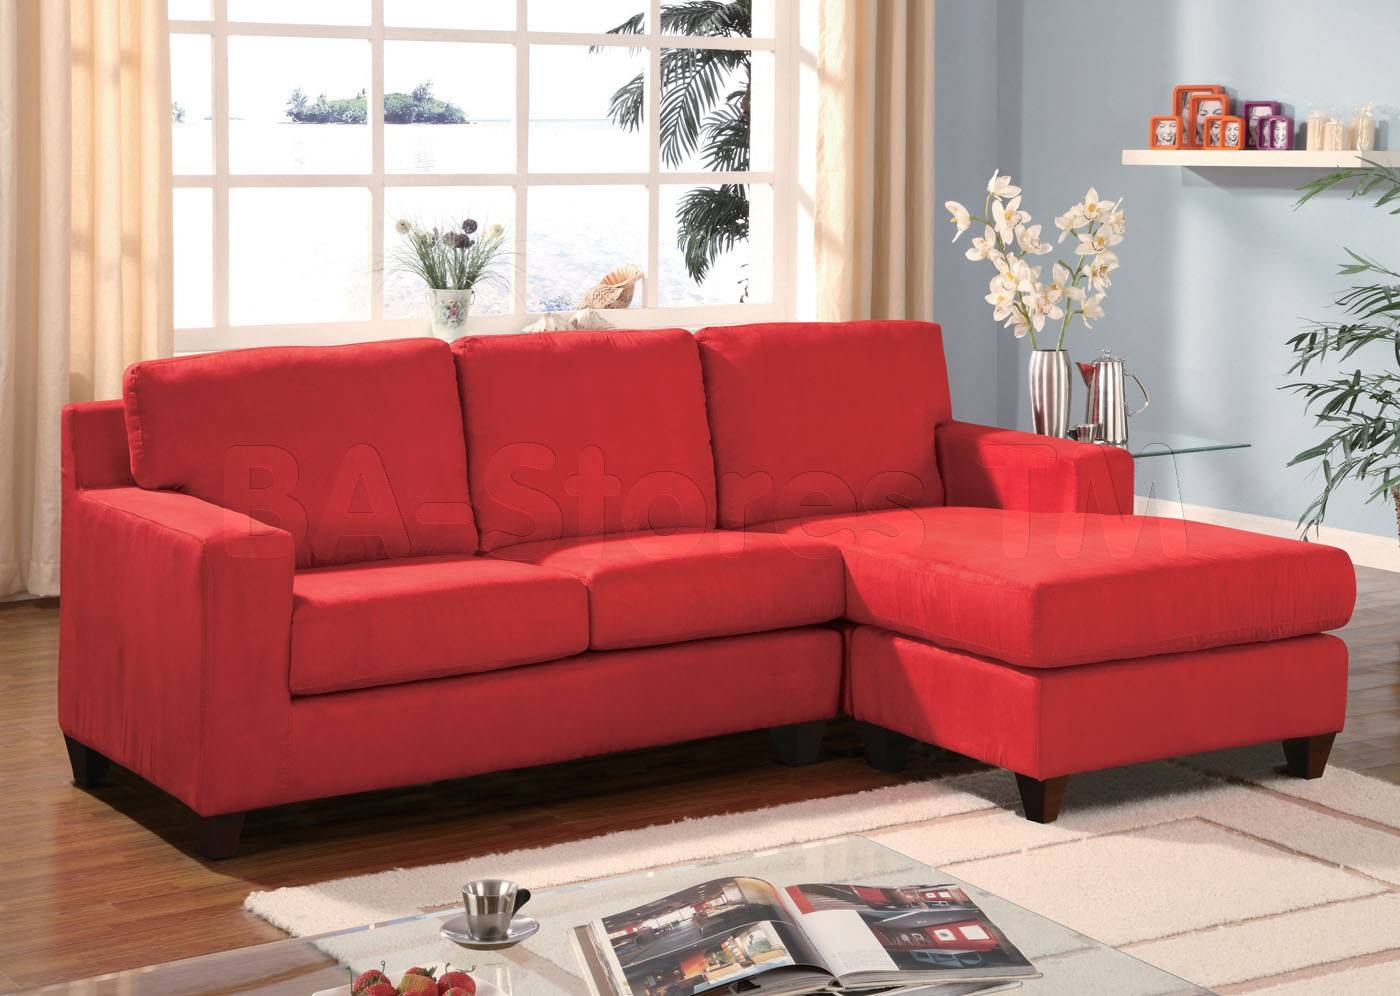 Sofas Center : Cosmopolitan Red Sectional Sofa Remarkable Images With Red Sectional Sleeper Sofas (Photo 5 of 30)